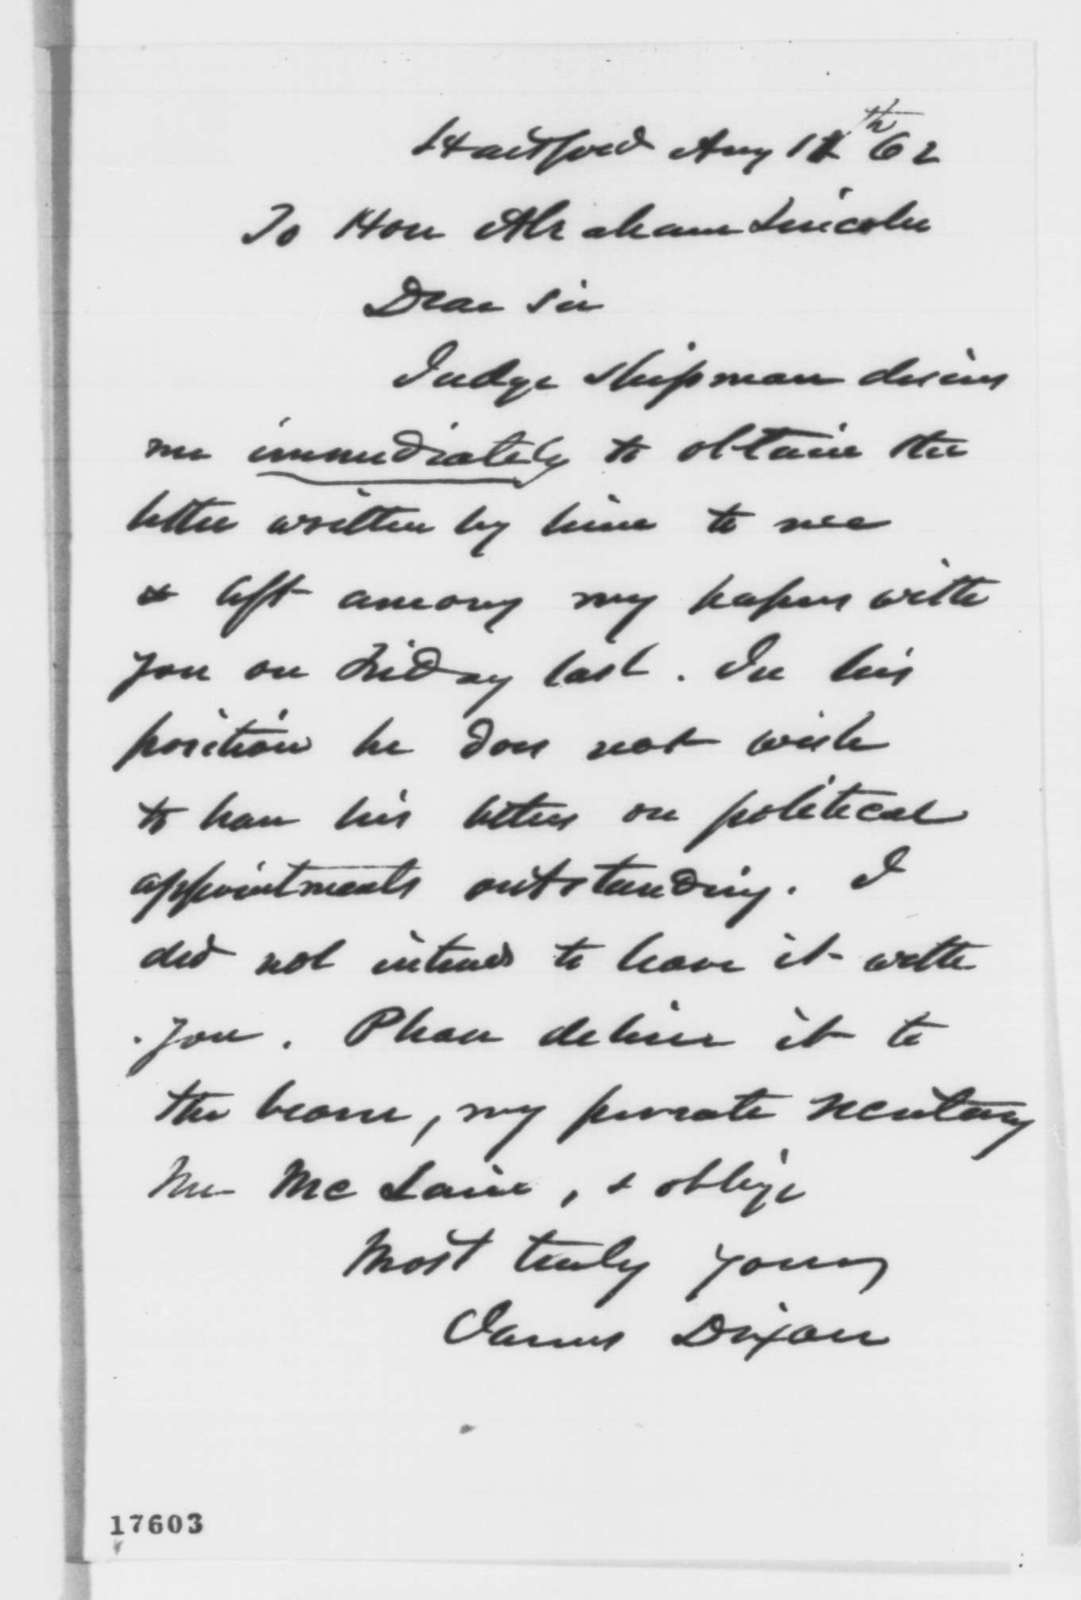 James Dixon to Abraham Lincoln, Tuesday, August 12, 1862  (Requests return of letter)